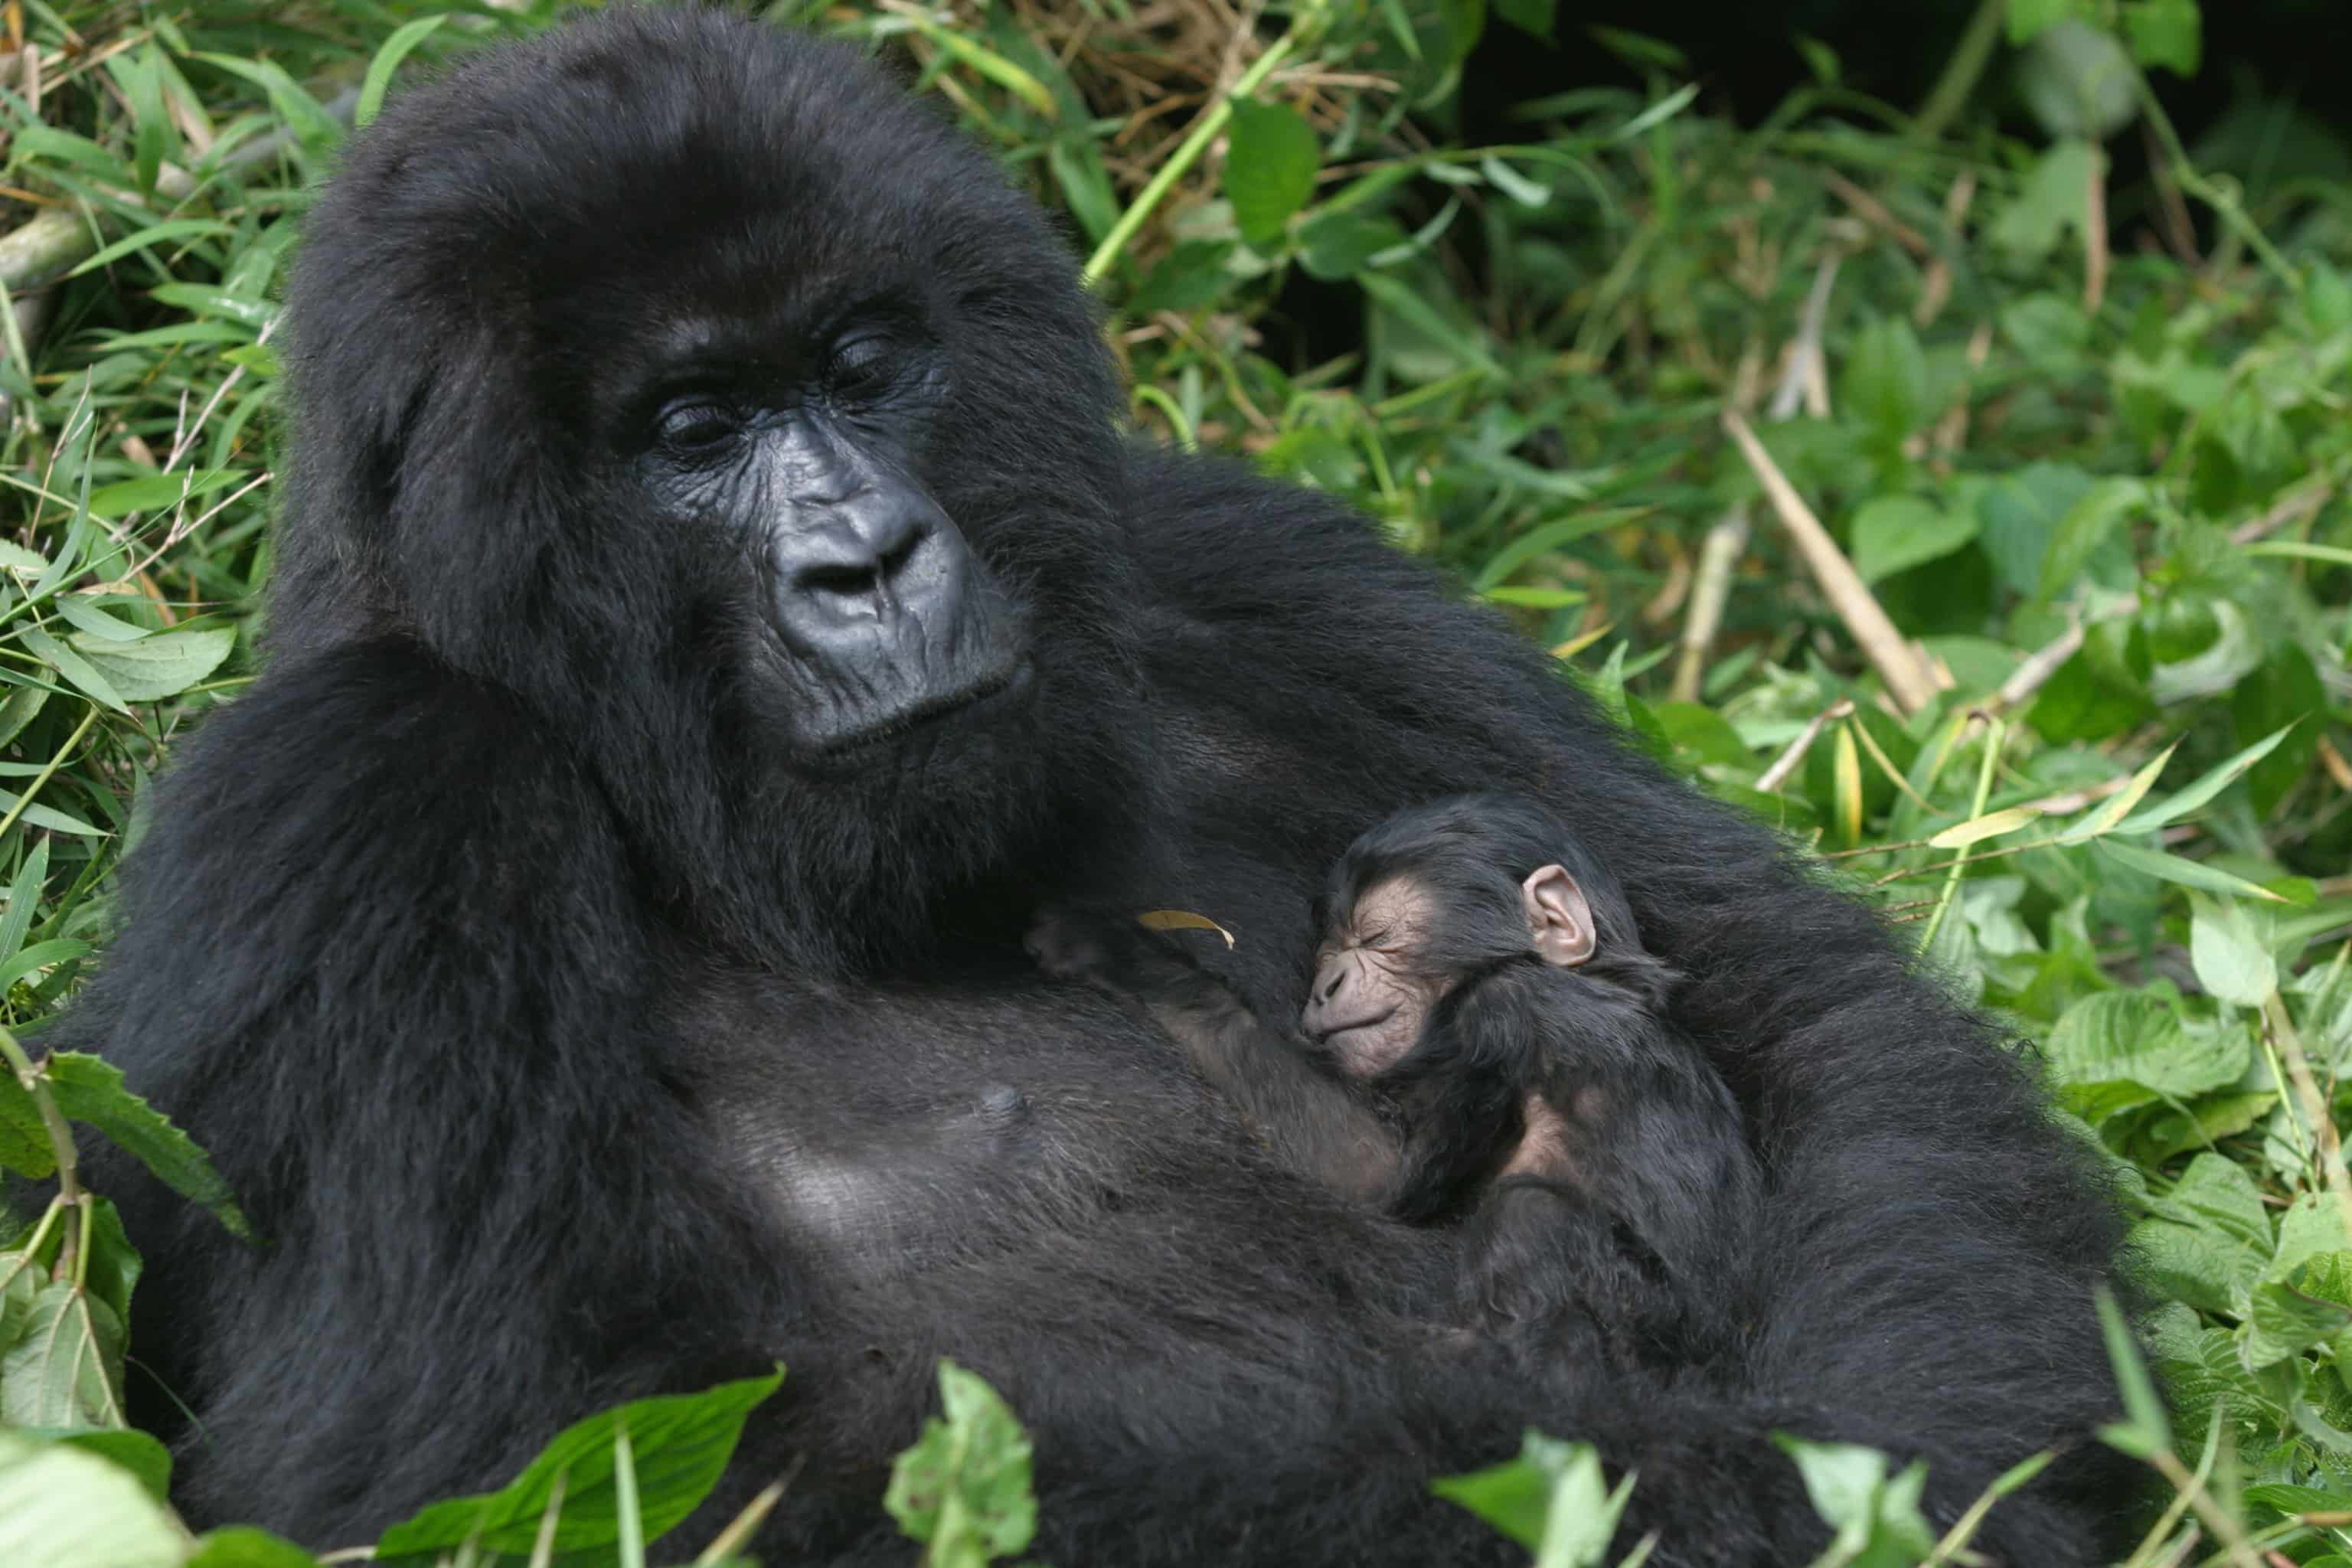 Mother gorilla with her baby